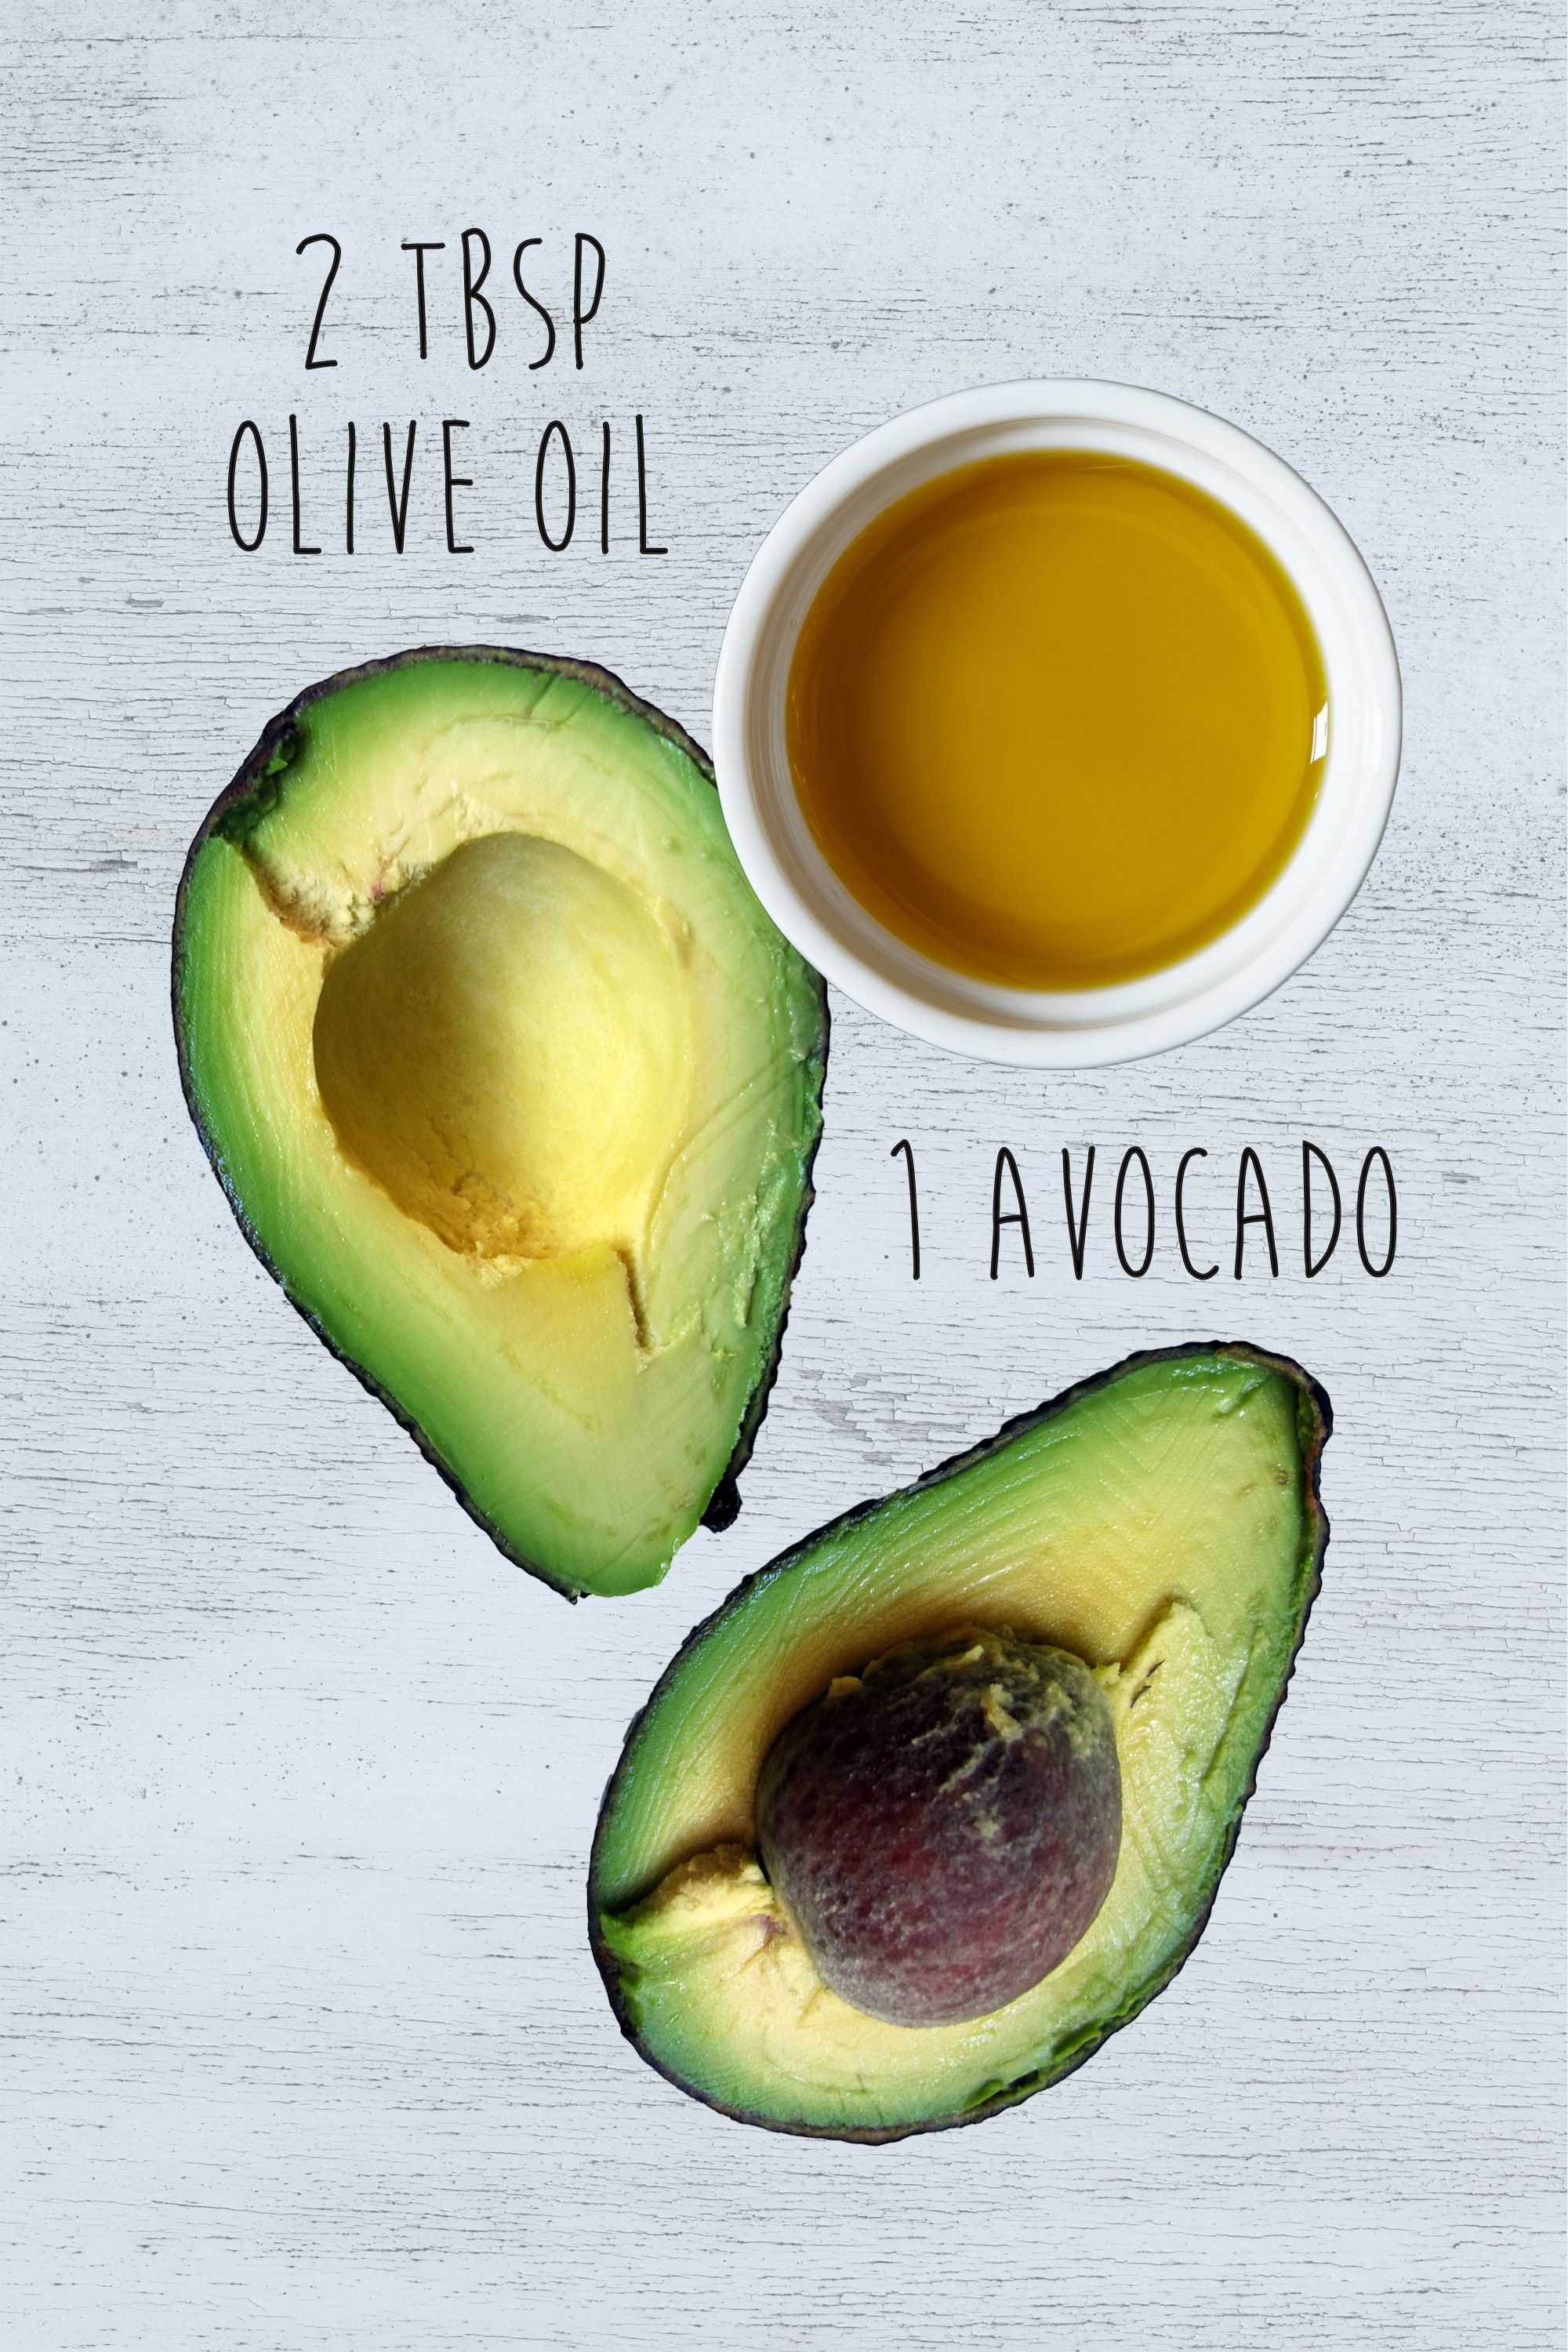 "<p><strong data-redactor-tag=""strong"" data-verified=""redactor"">Why it works: </strong>Avocado is full of&nbsp&#x3B;nourishing oils, but since the mask is heavy, it's best for thick hair.&nbsp&#x3B;<strong data-redactor-tag=""strong"" data-verified=""redactor"">How to do it:</strong> Mash up the avocado and&nbsp&#x3B;olive oil, or for a smoother consistency, puree them in a food processor. (Either way, the olive oil makes the avocado easier to spread.) Work the mixture&nbsp&#x3B;through your strands&nbsp&#x3B;with a wide-tooth comb and tie up your hair&nbsp&#x3B;loosely with a clip. ""It can be pretty drippy and messy,"" says Buckett, who recommends swaddling your head with plastic wrap. In addition to taming&nbsp&#x3B;mess, the plastic wrap traps heat and&nbsp&#x3B;helps the ingredients penetrate. Wait 30 minutes before washing&nbsp&#x3B;it out.&nbsp&#x3B;<strong data-redactor-tag=""strong"" data-verified=""redactor"">What you'll get:</strong> Smooth&nbsp&#x3B;hair with extra&nbsp&#x3B;shiny oomph.</p>"